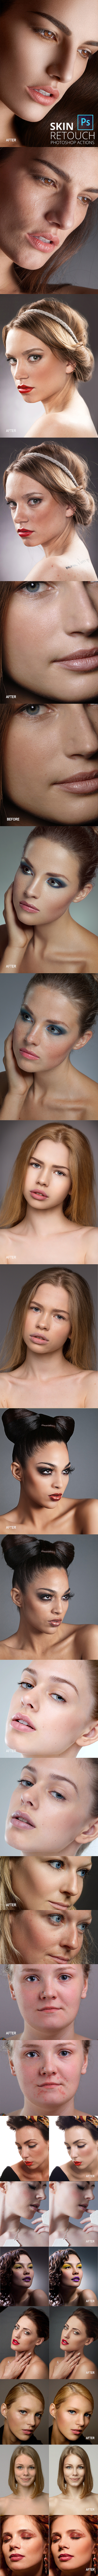 GraphicRiver Fast Skin Retouching 21108363